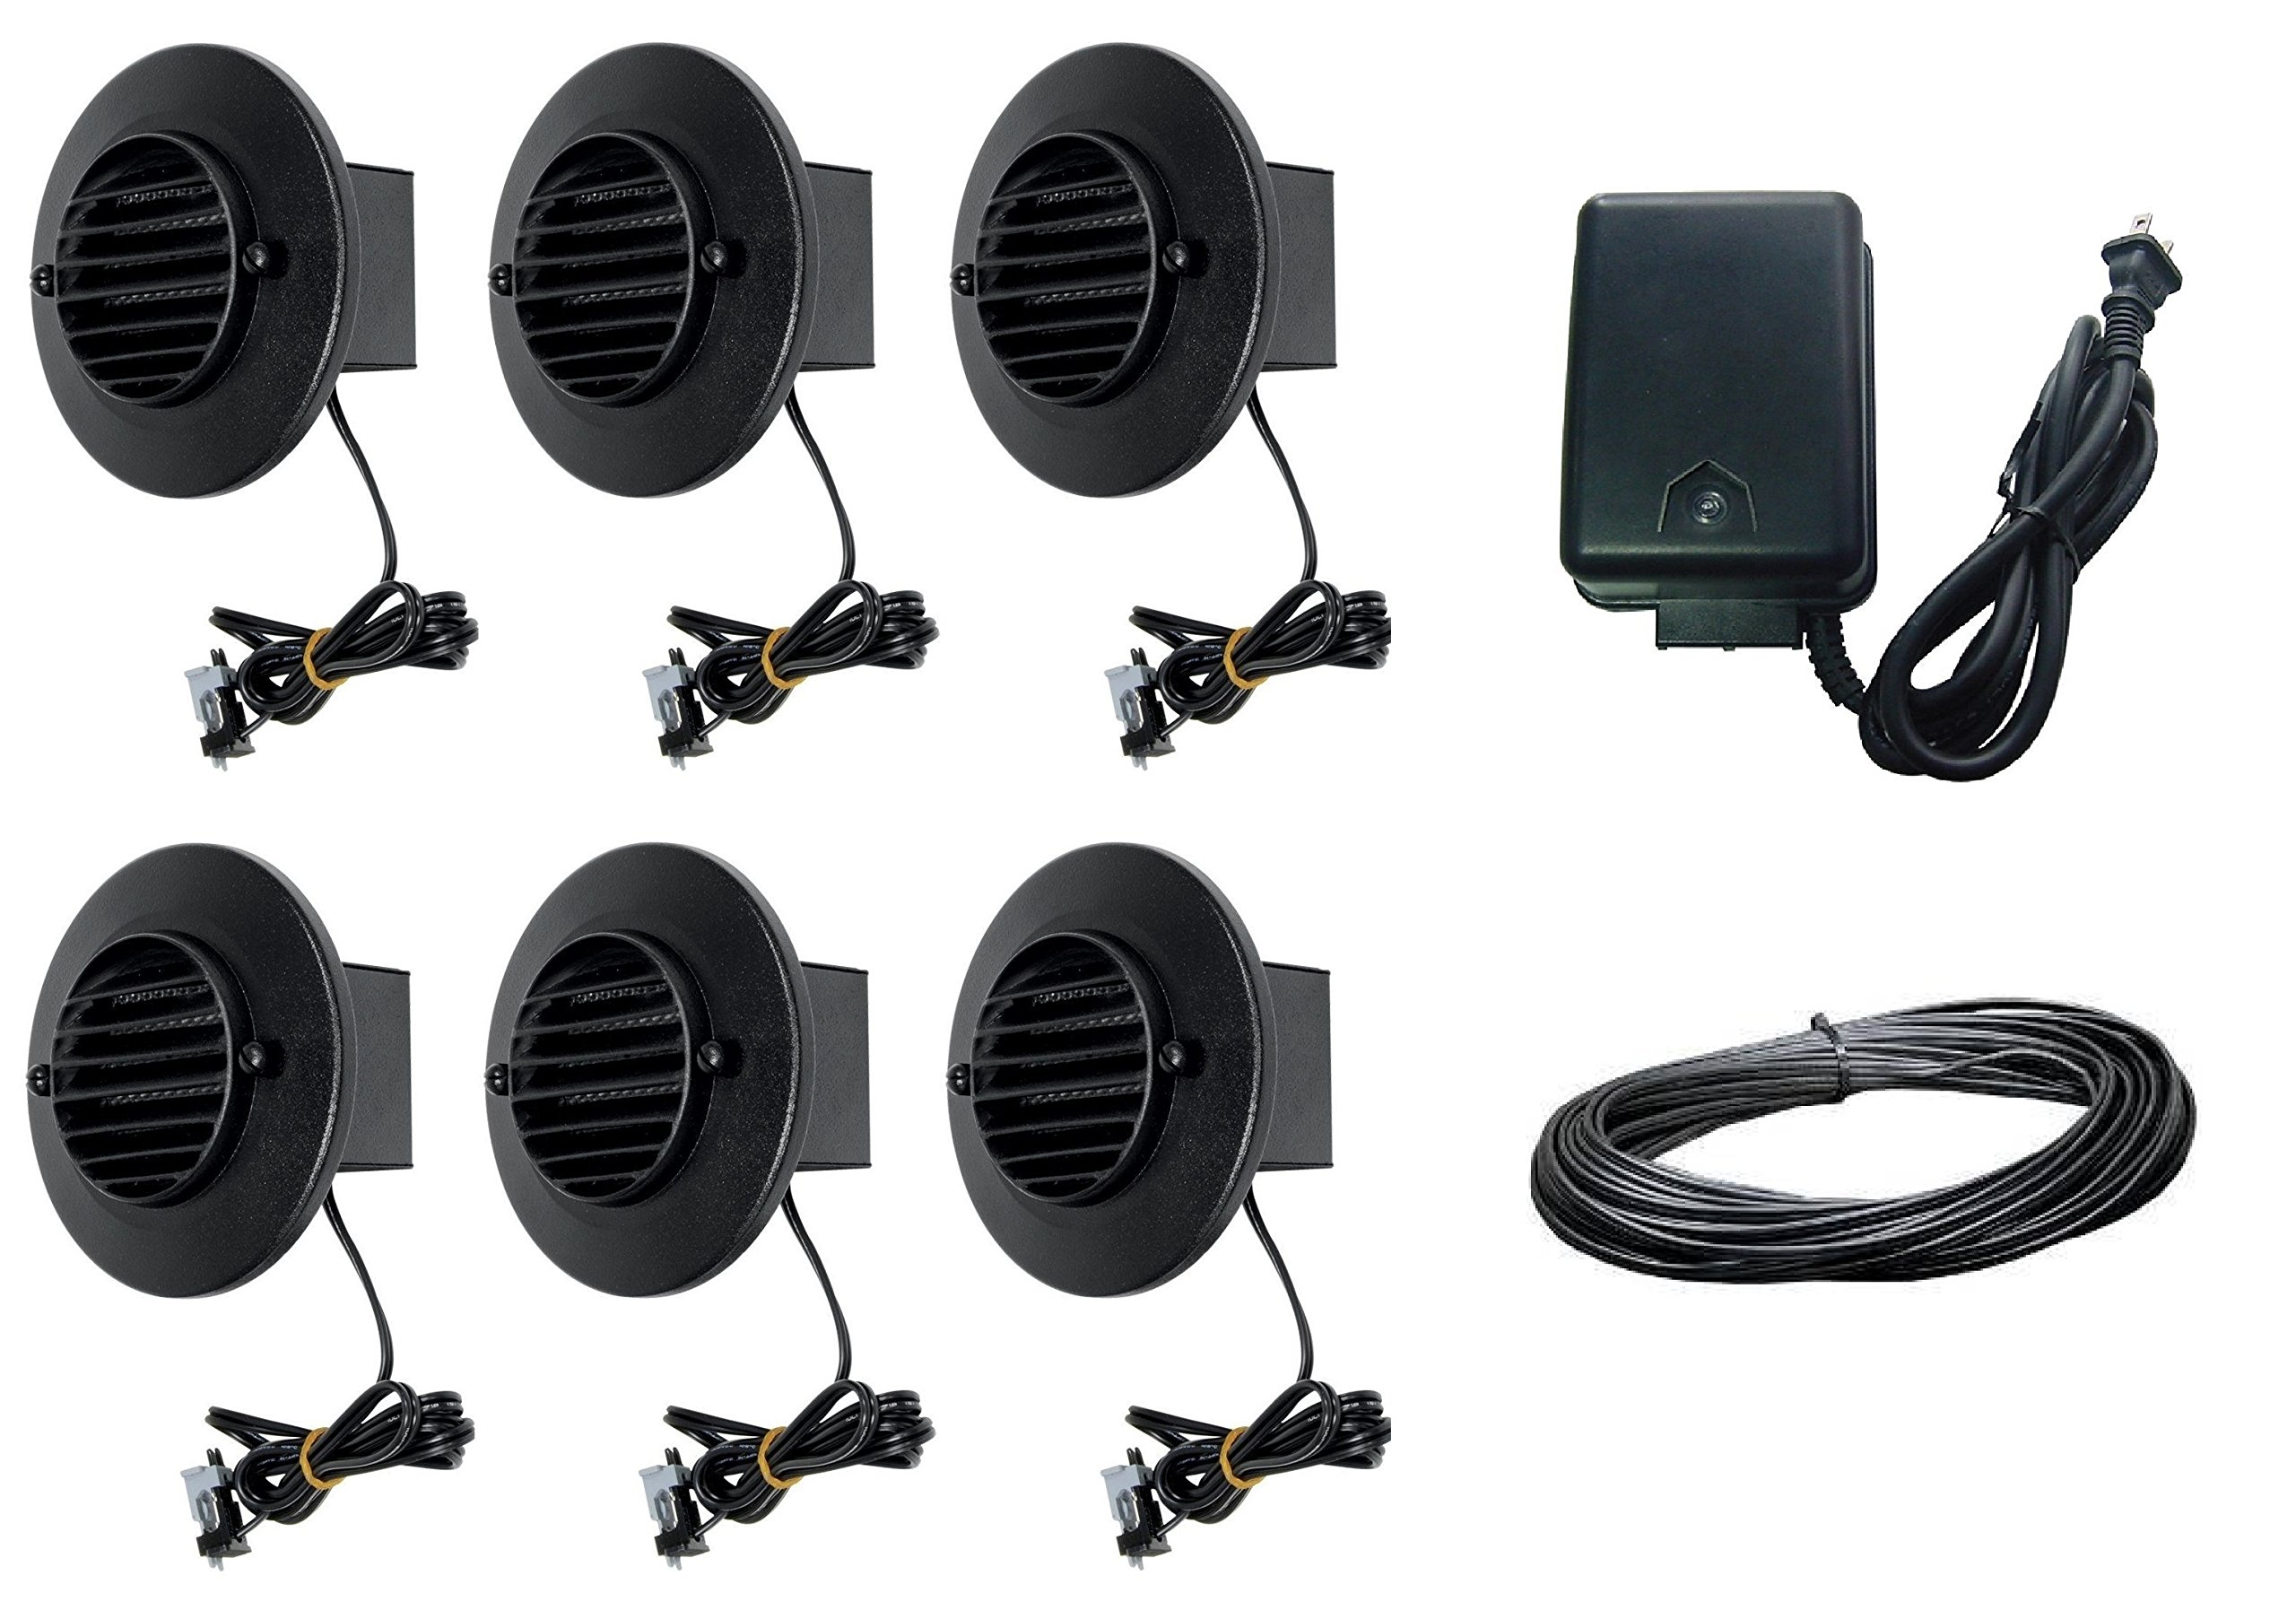 8 Piece Malibu Lighting Kit LED Deck Step Round Surface Lights Low Voltage with Black Finish + 45 watt Transformer + 50 ft landscape wire. BY MALIBU DISTRIBUTION